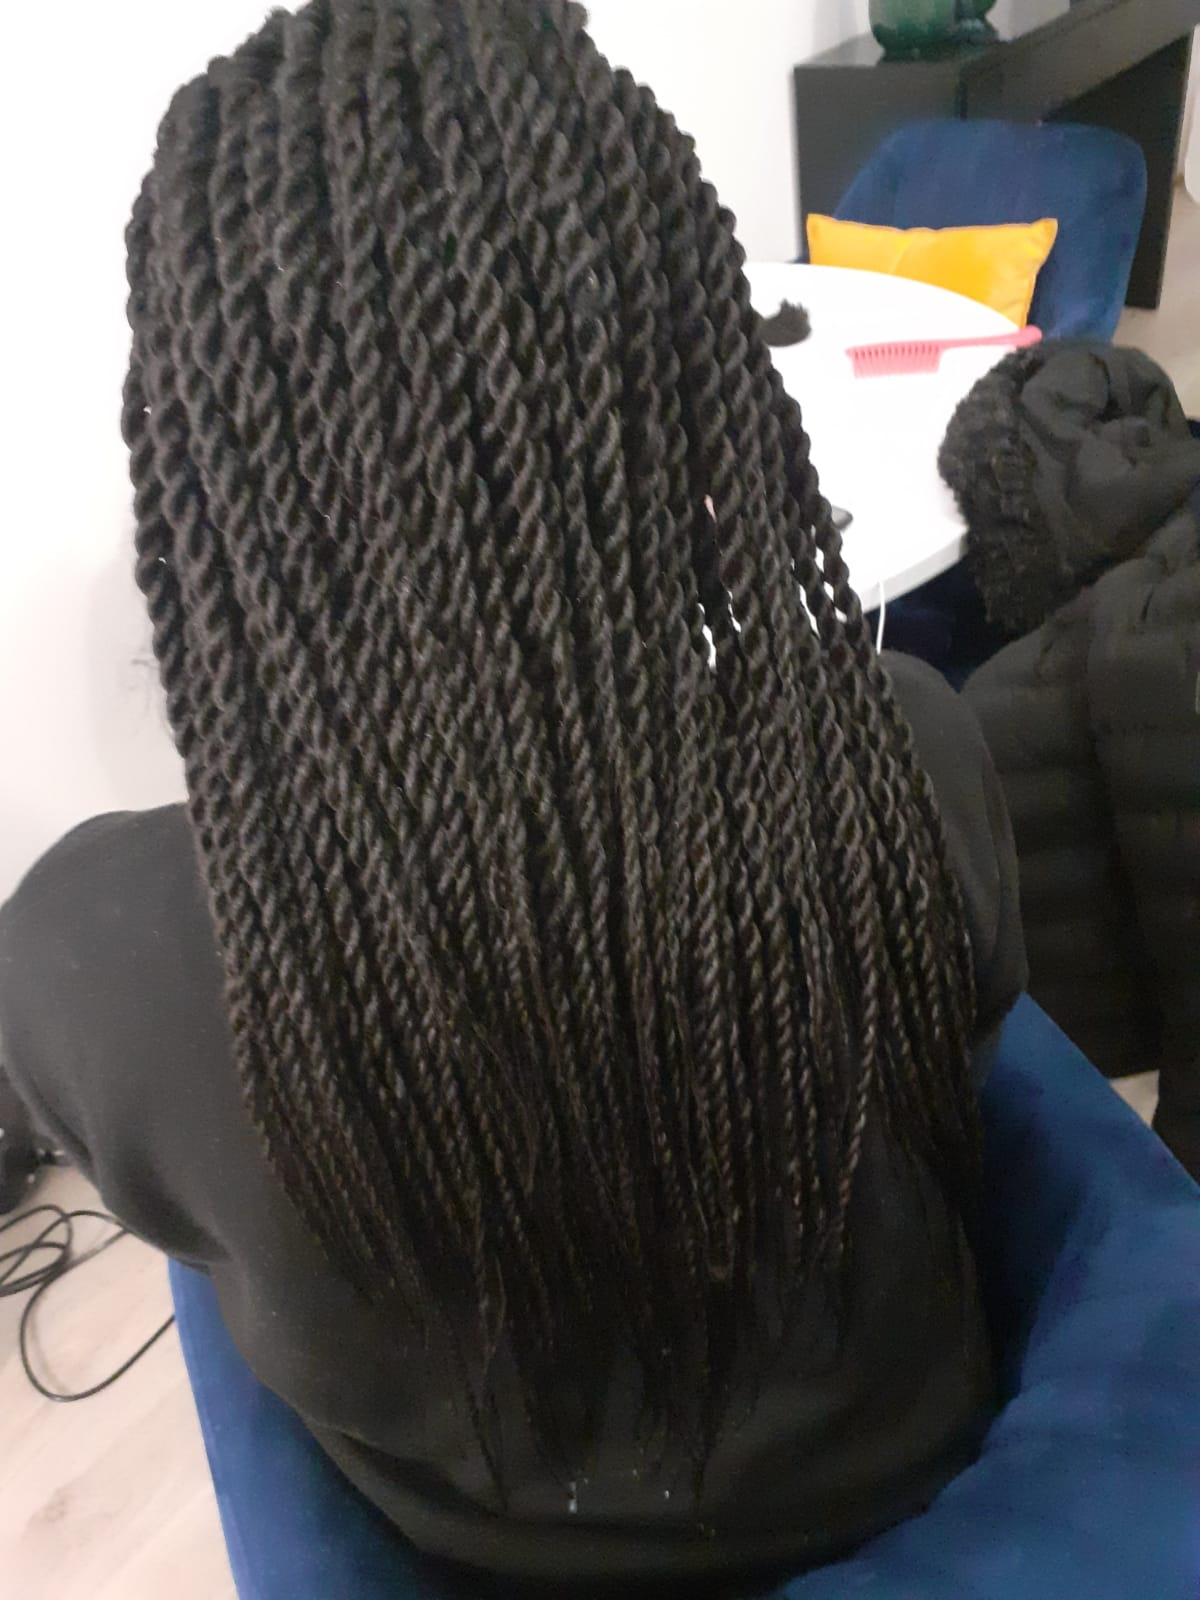 salon de coiffure afro tresse tresses box braids crochet braids vanilles tissages paris 75 77 78 91 92 93 94 95 QFJORFJE